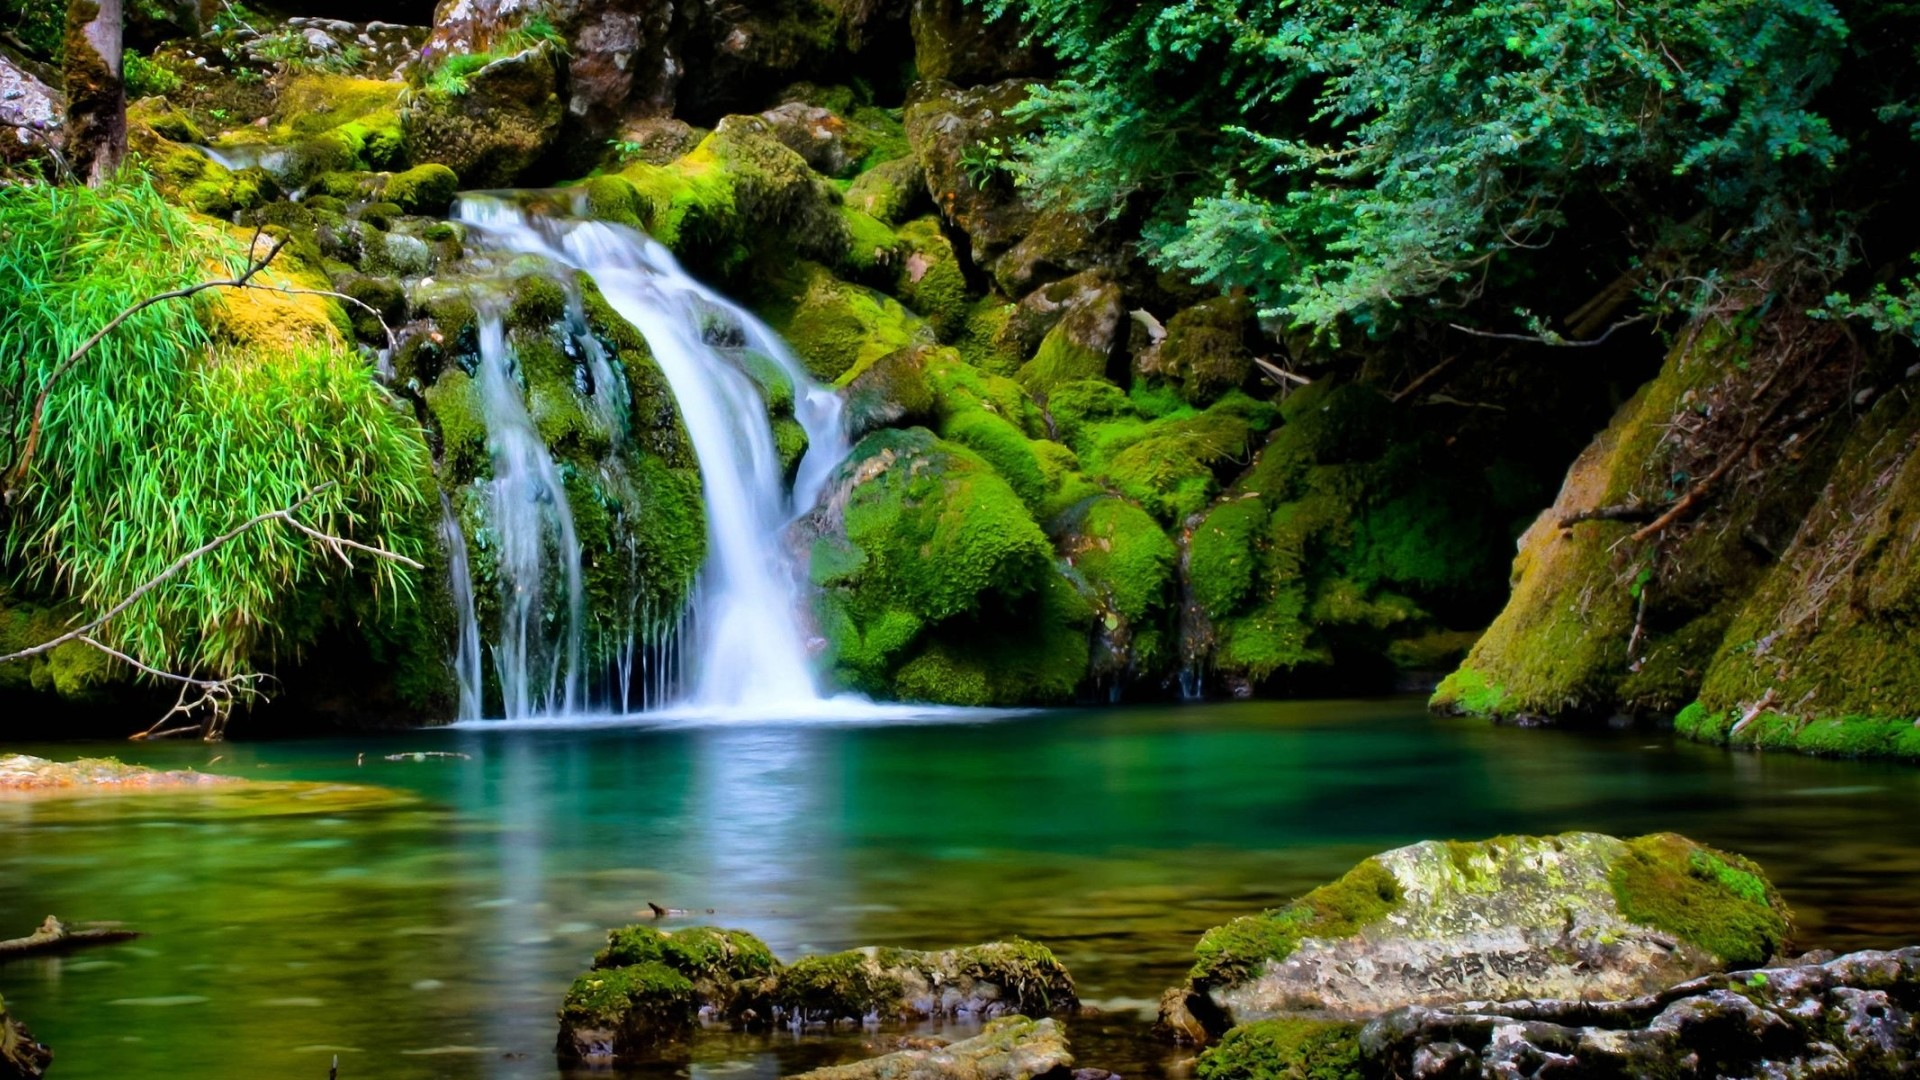 Cool Backgrounds Nature Posted By Michelle Peltier